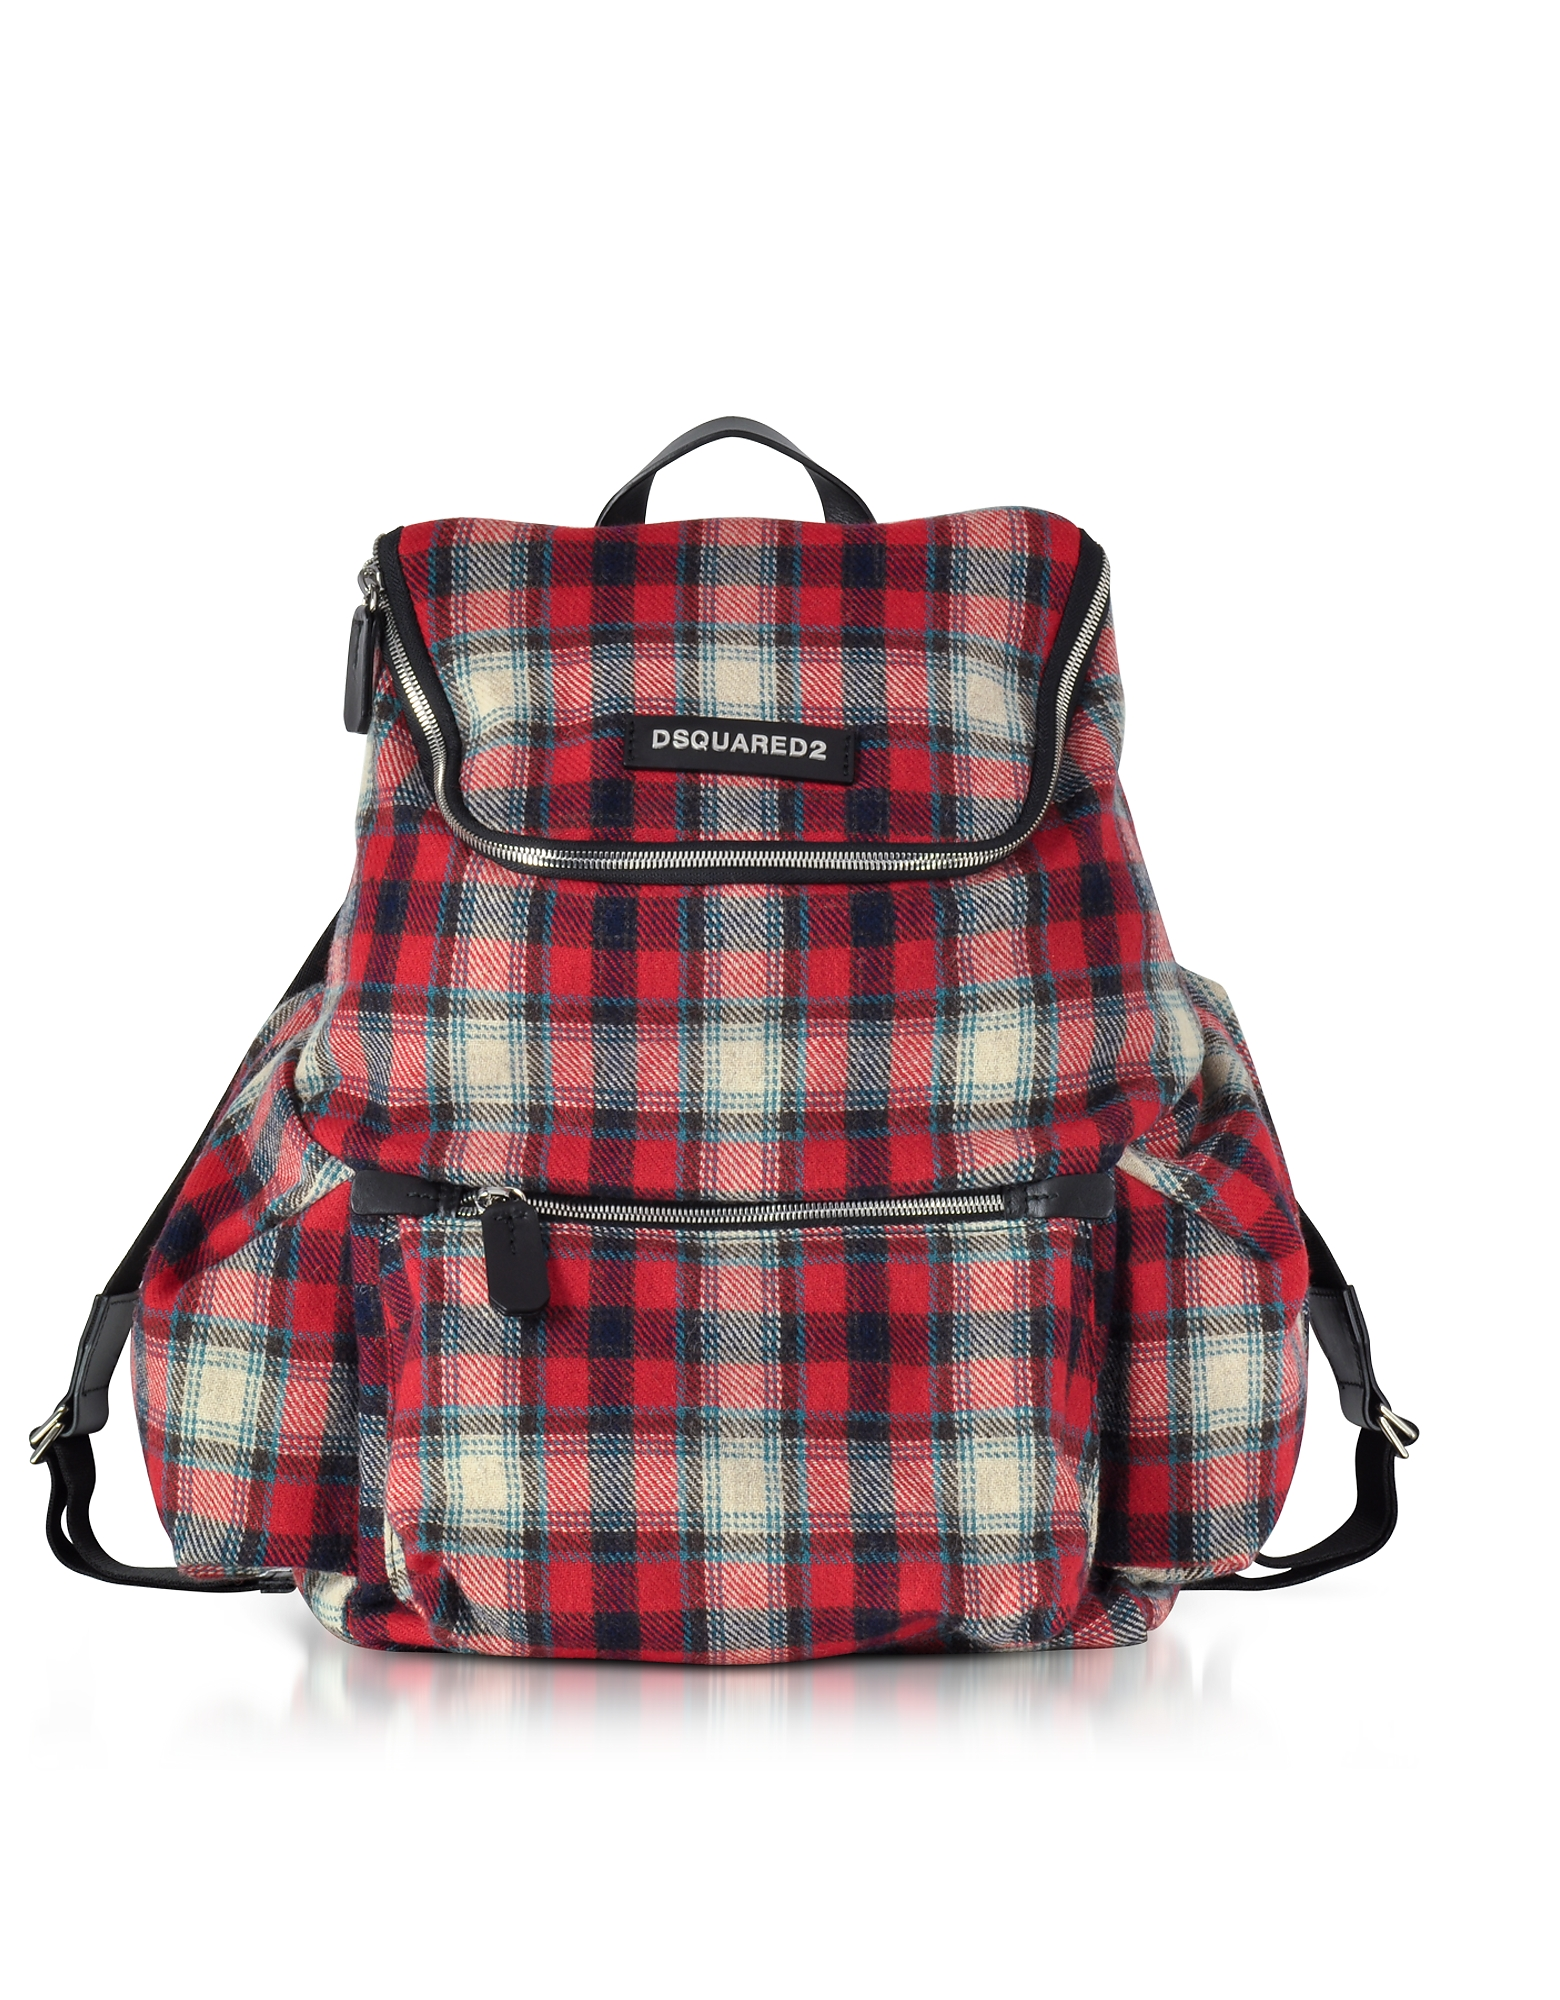 DSquared2 Backpacks, Red Checked Wool Blend Men's Backpack